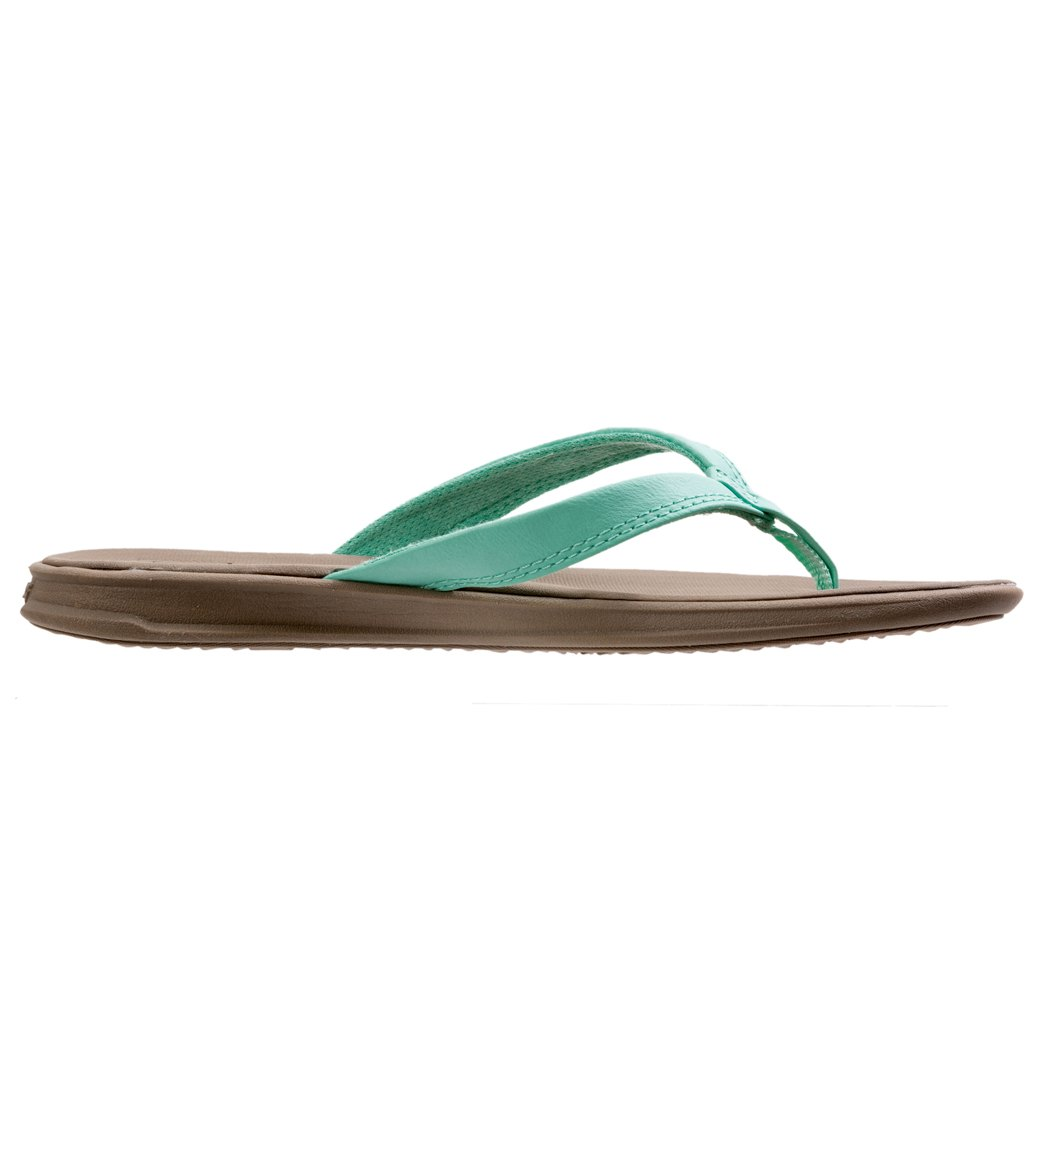 7ae5fbf42f8b Reef Women s Reef Rover Catch Flip Flop at SwimOutlet.com